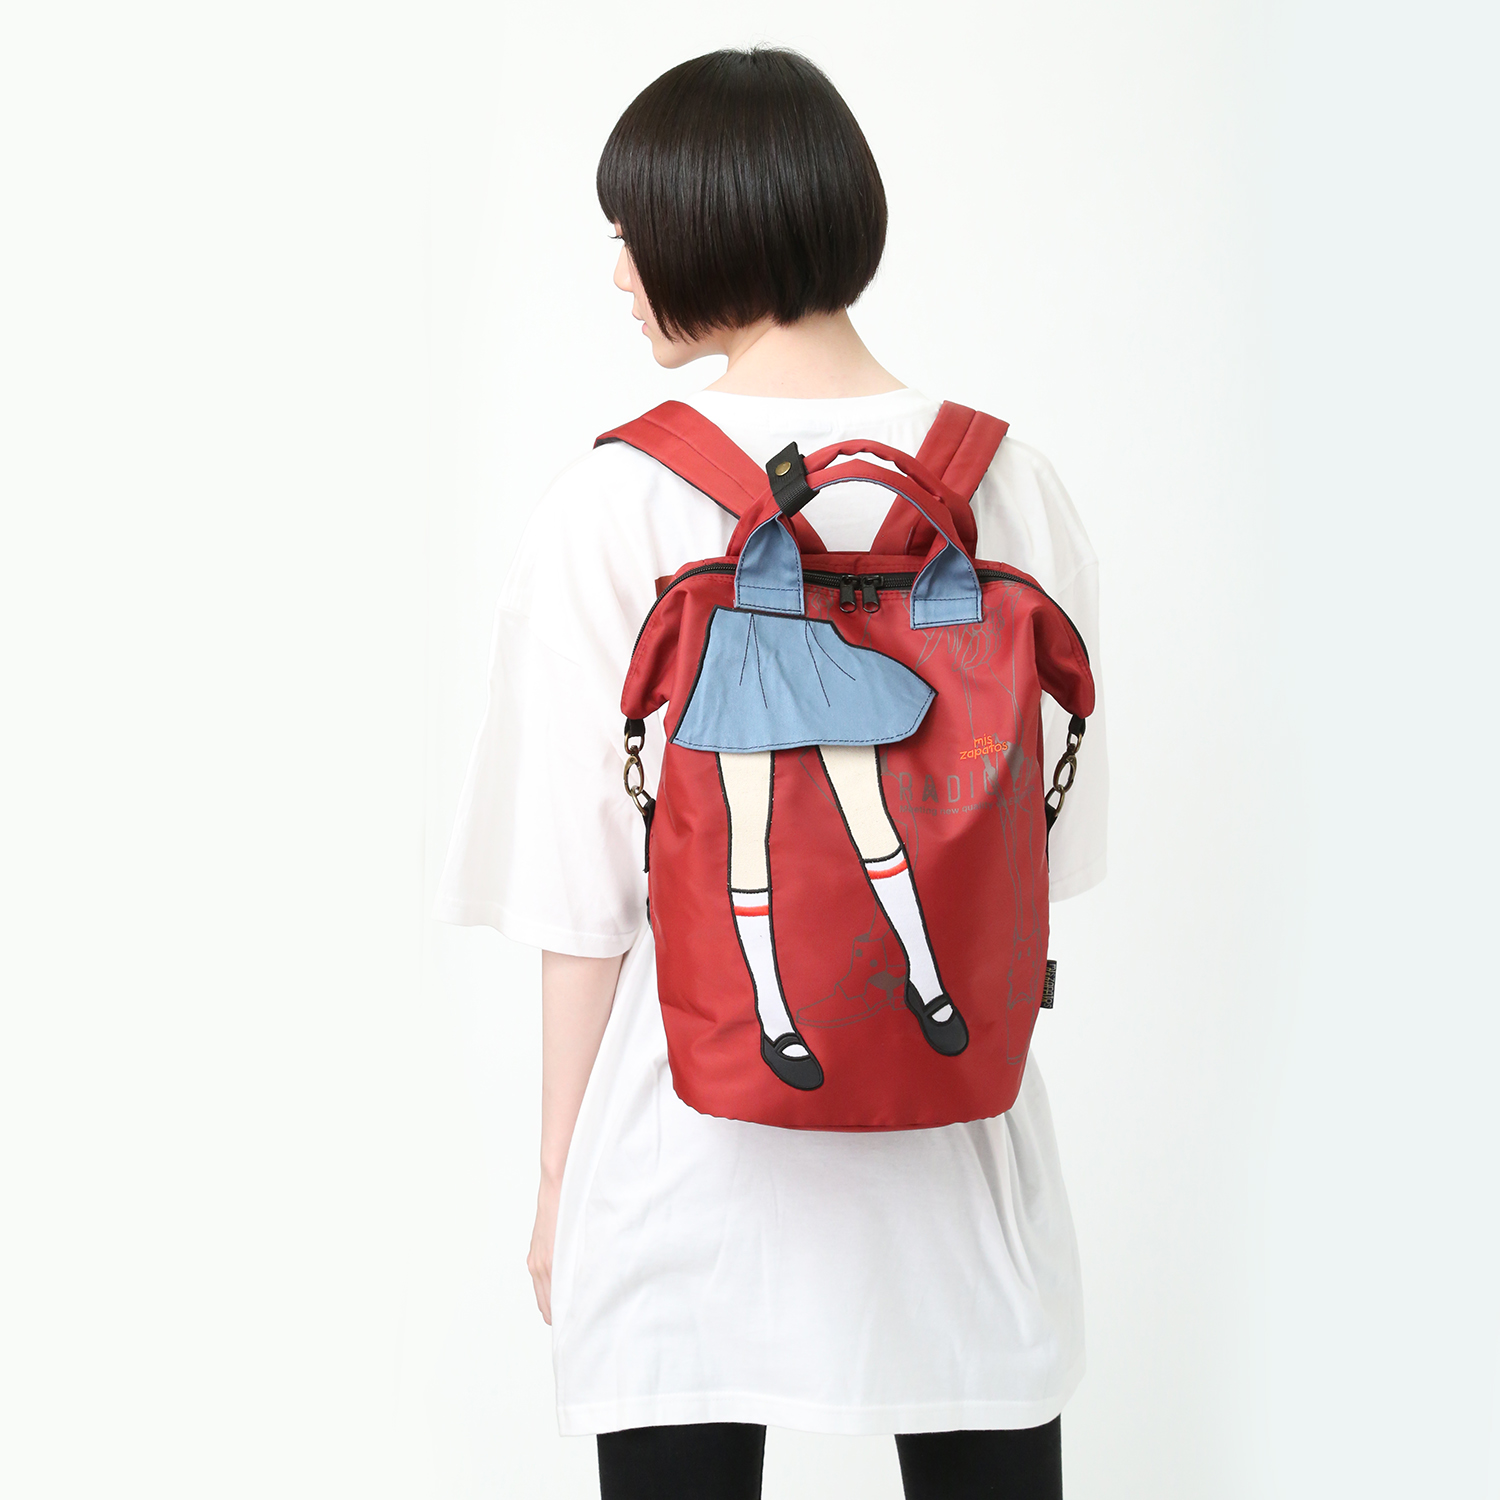 EVANGELION Pilot 3way Back Pack by mis zapatos (レッド(アスカ))